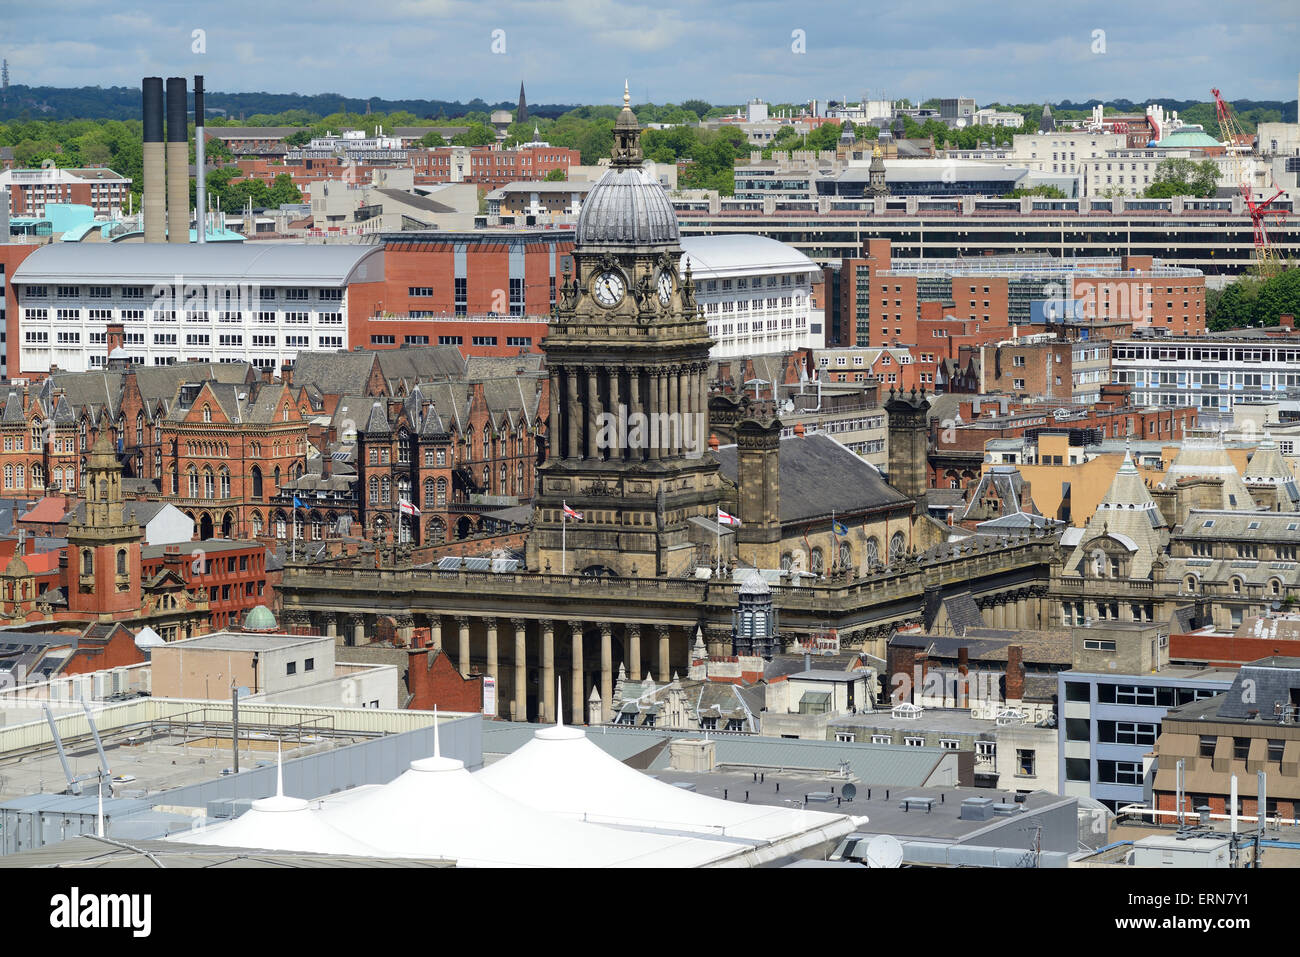 high angle view of leeds town built in 1858 designed by cuthbert brodrick  yorkshire united kingdom - Stock Image